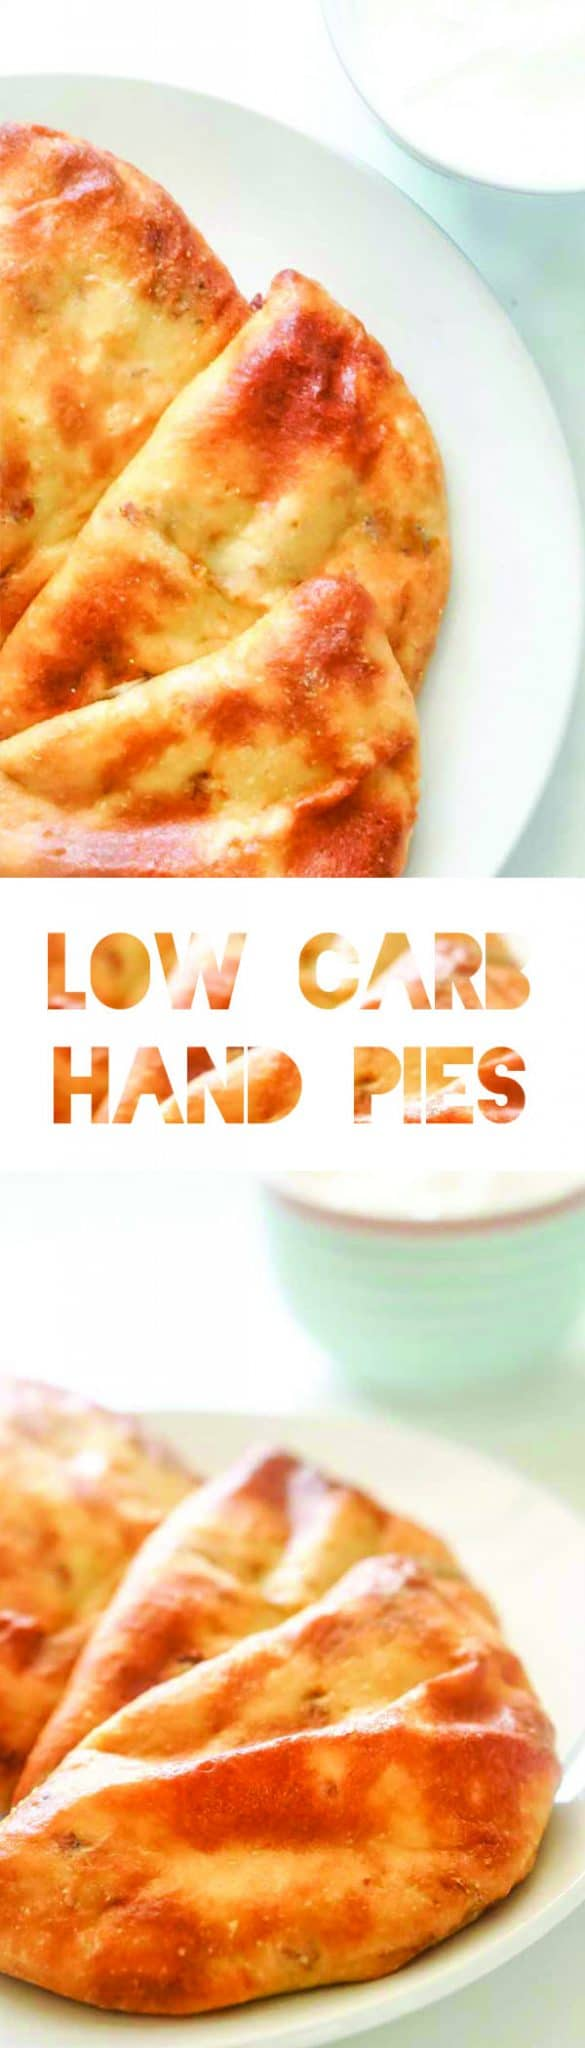 Low Carb Hand Pies Recipes | Keto Recipes | Fathead Pizza | Atkins